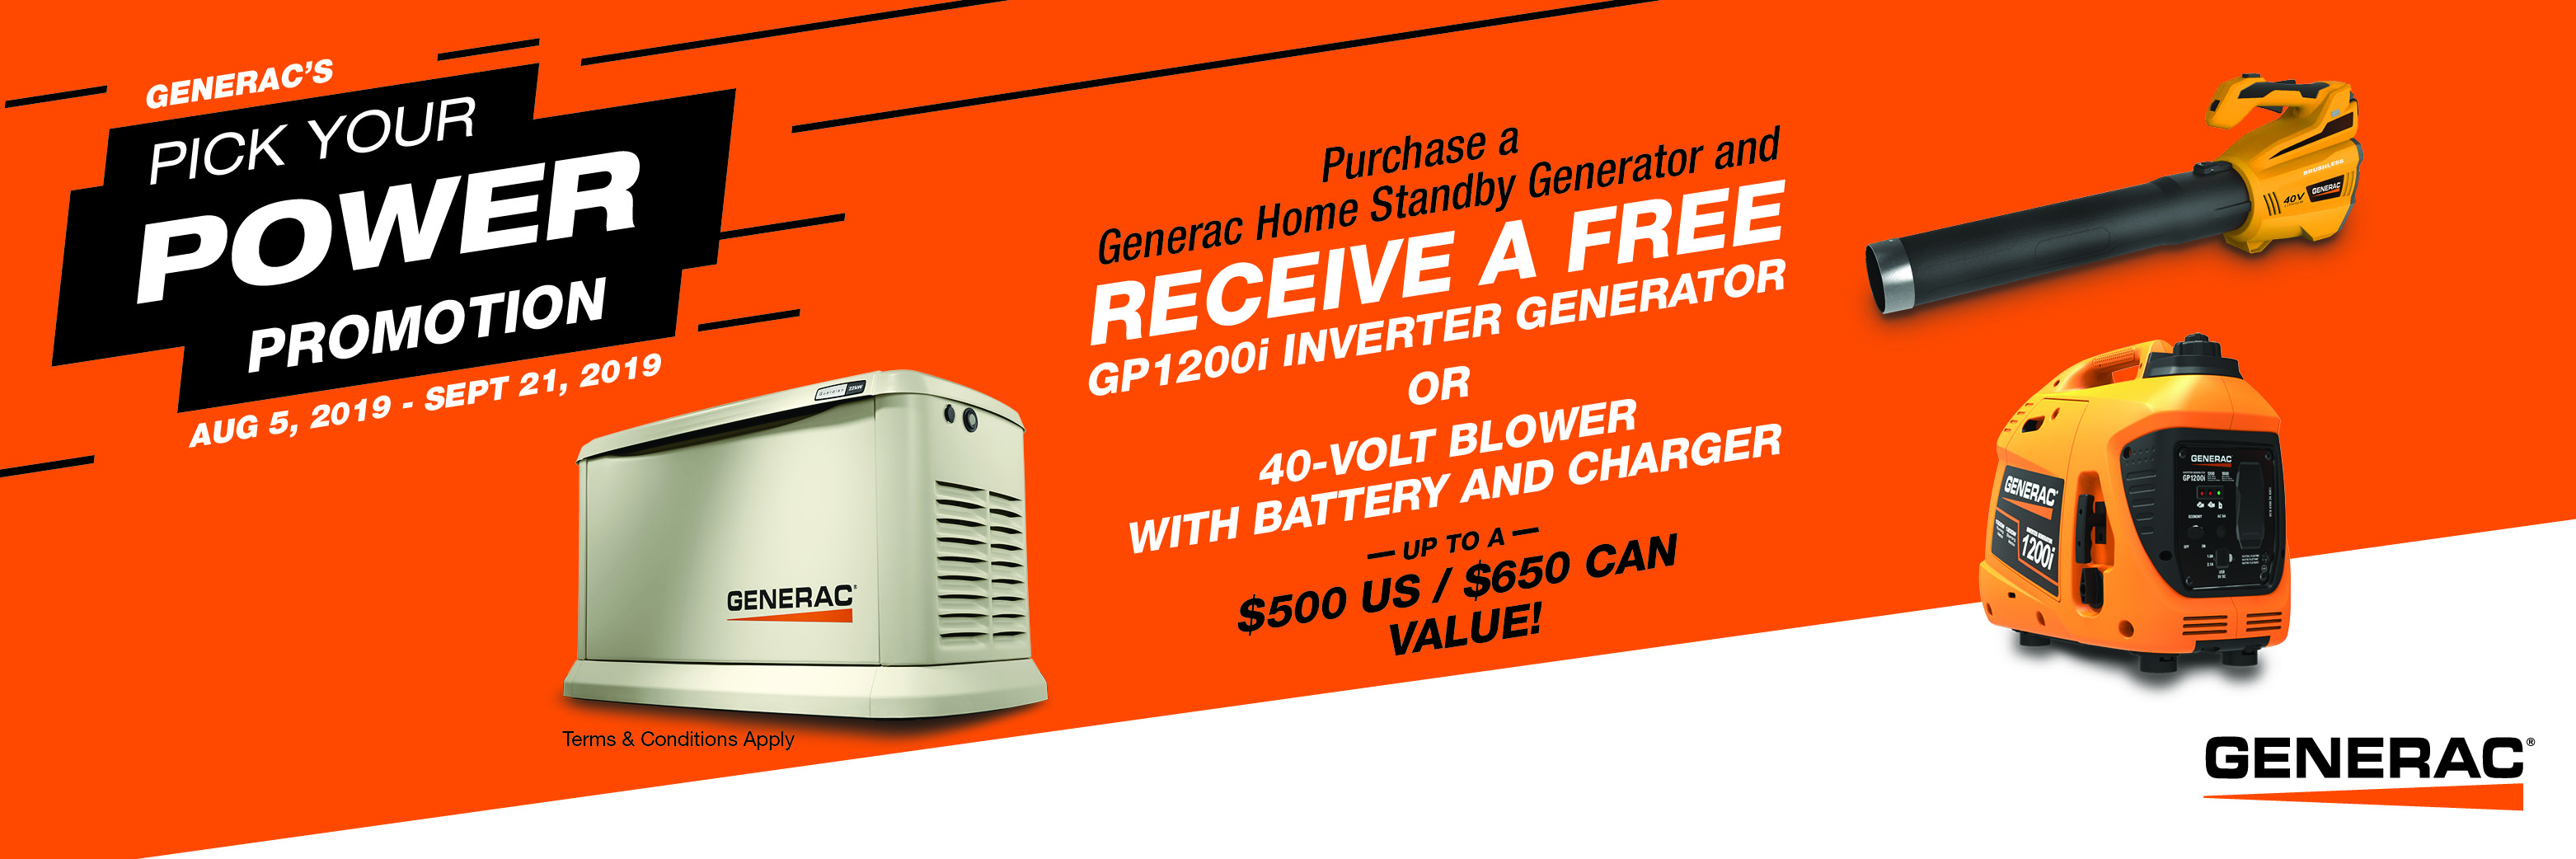 Pick Your Power - Bonus Free Gift with Purchase of Generac Home Standby Generator - Terms and Conditions Apply